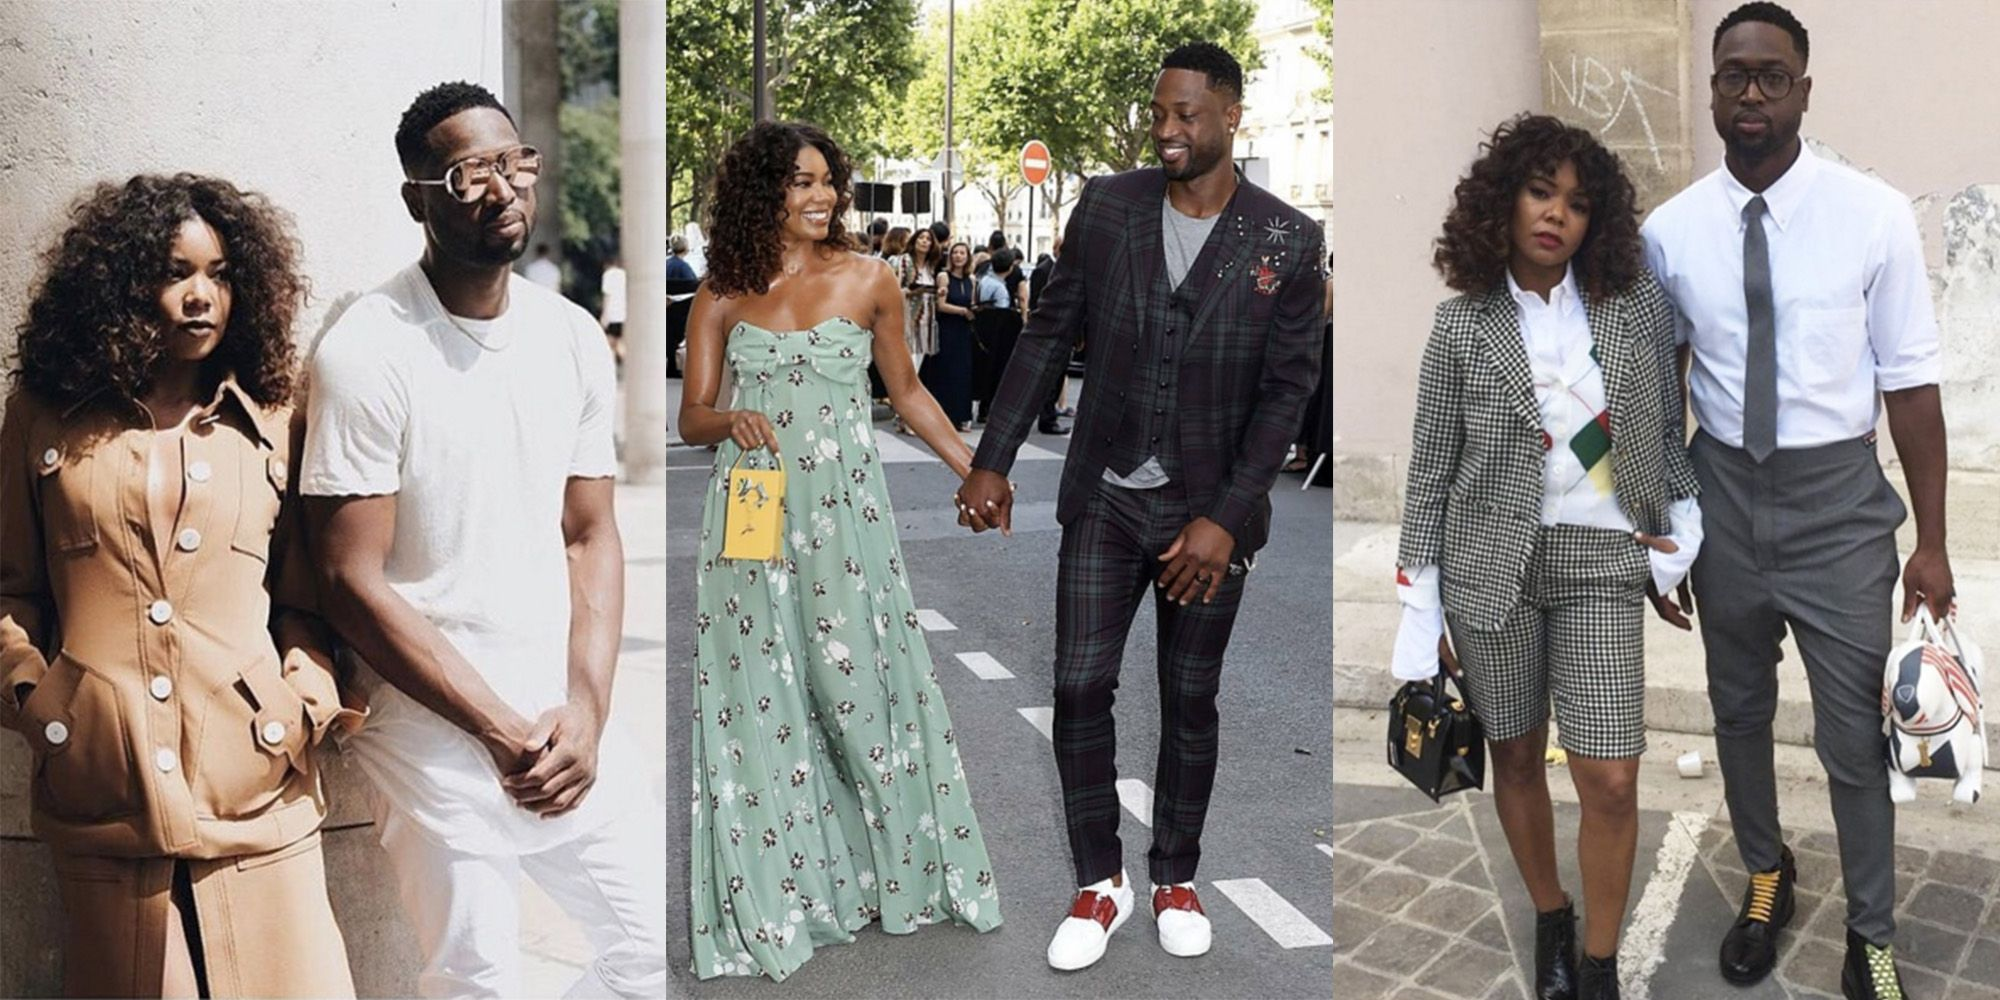 Gabrielle Union and Dwayne Wade's Travel Instagrams Are Better Than Yours